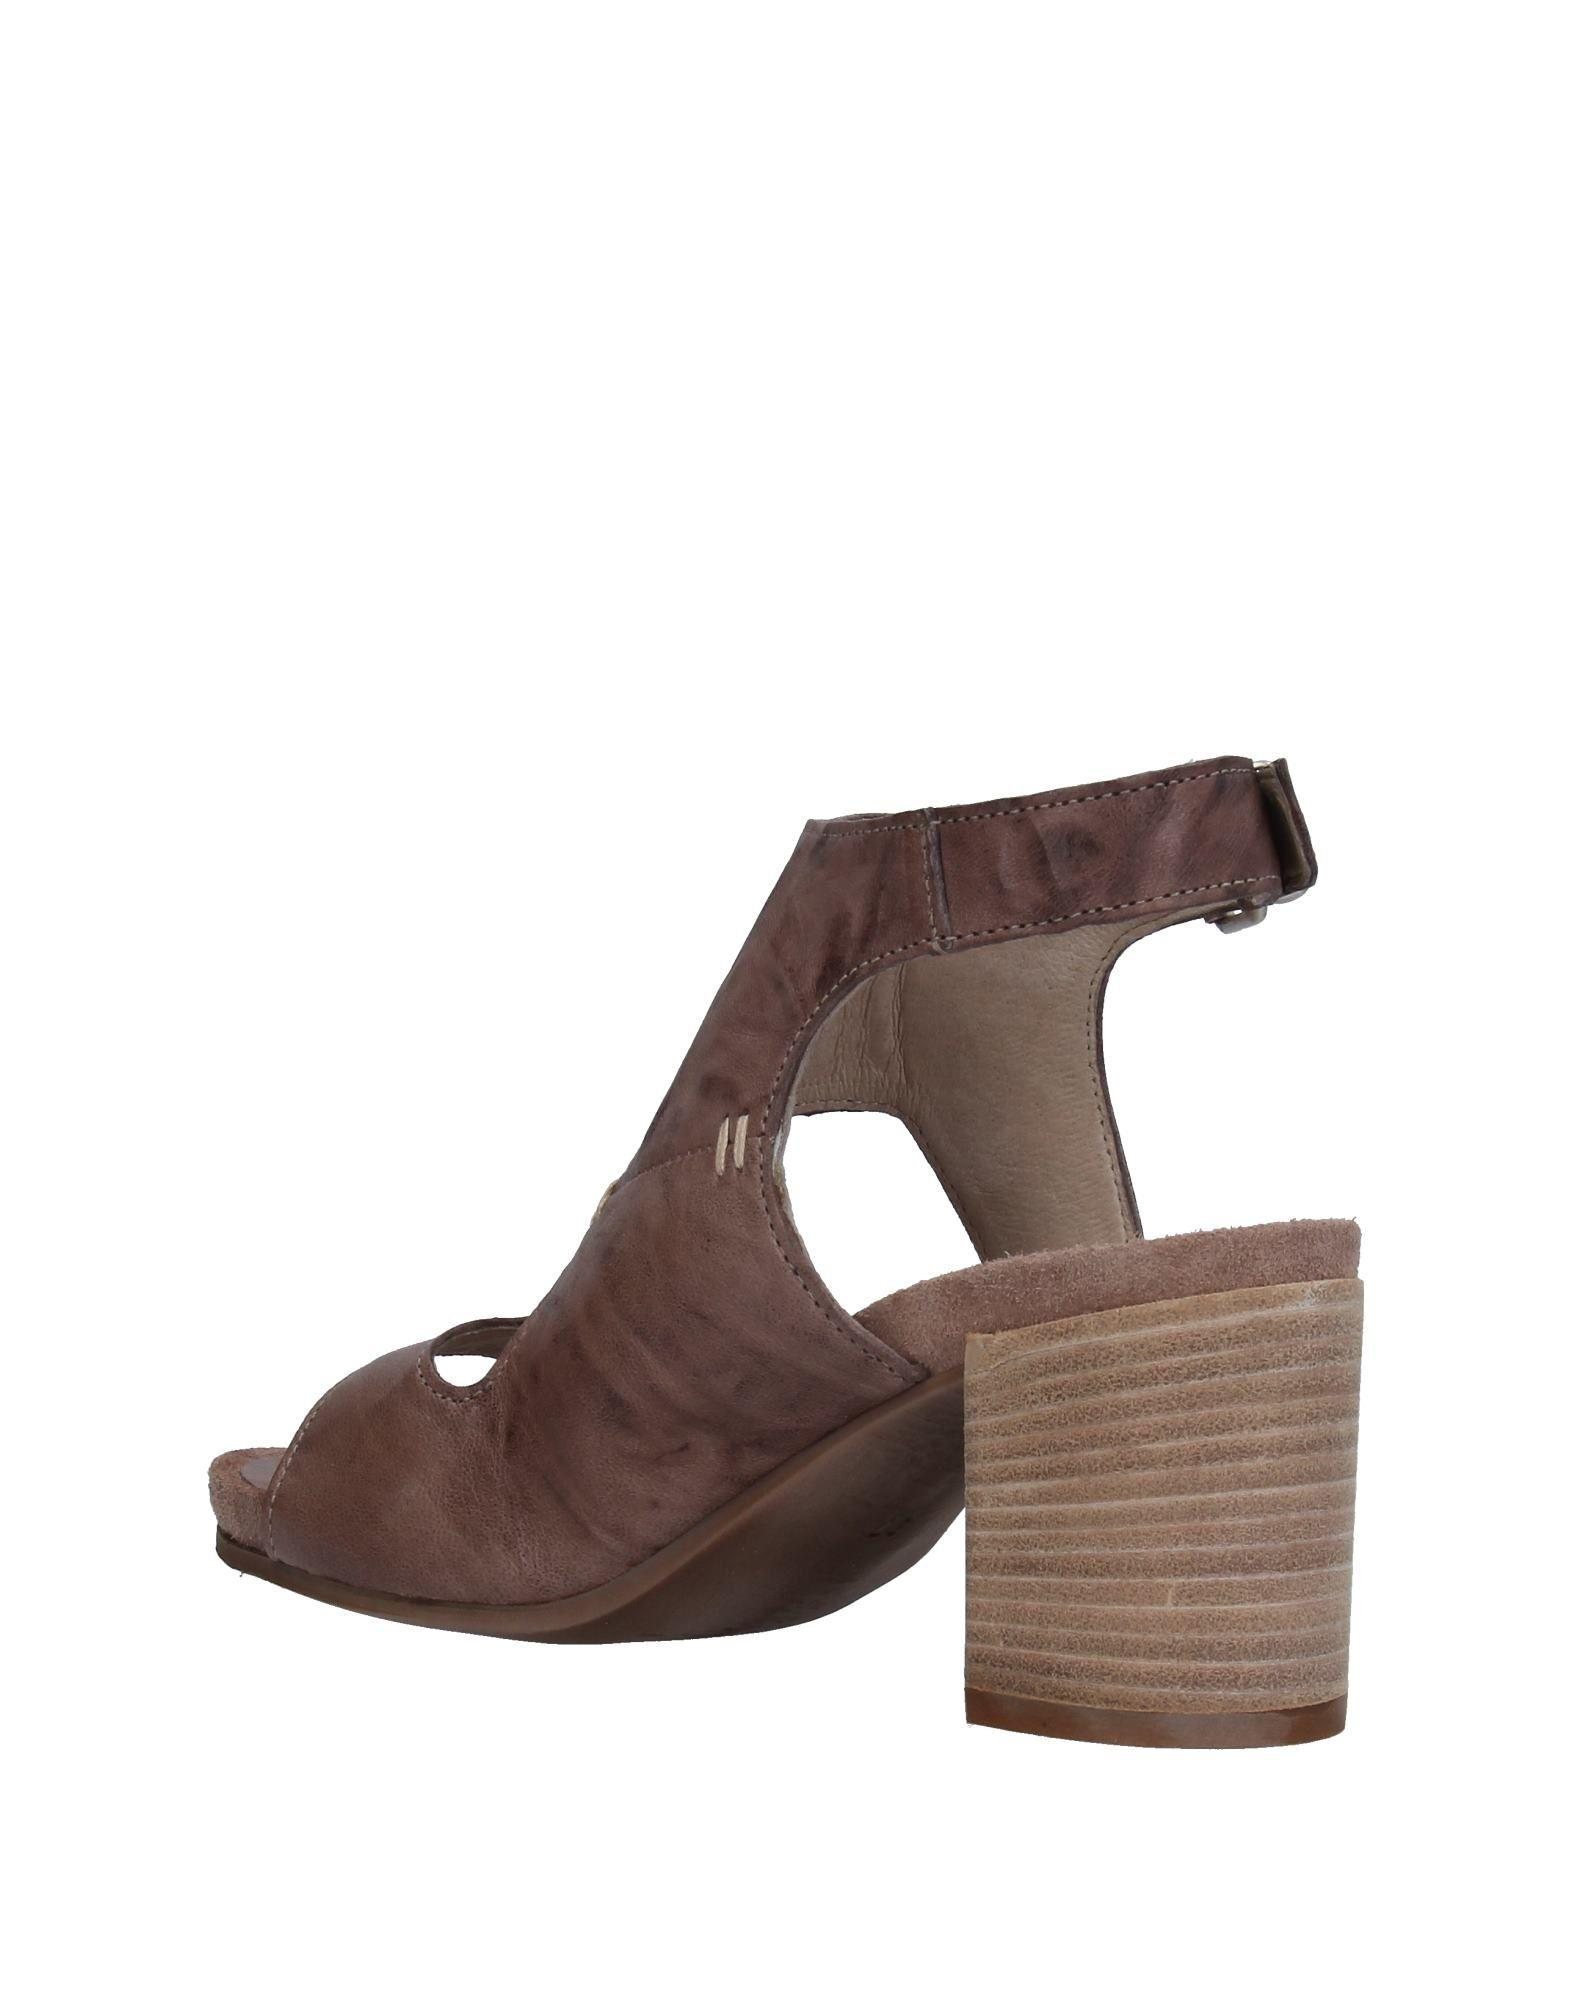 In Sandals Brown Lyst Lyst Khrio MSzqUVGp